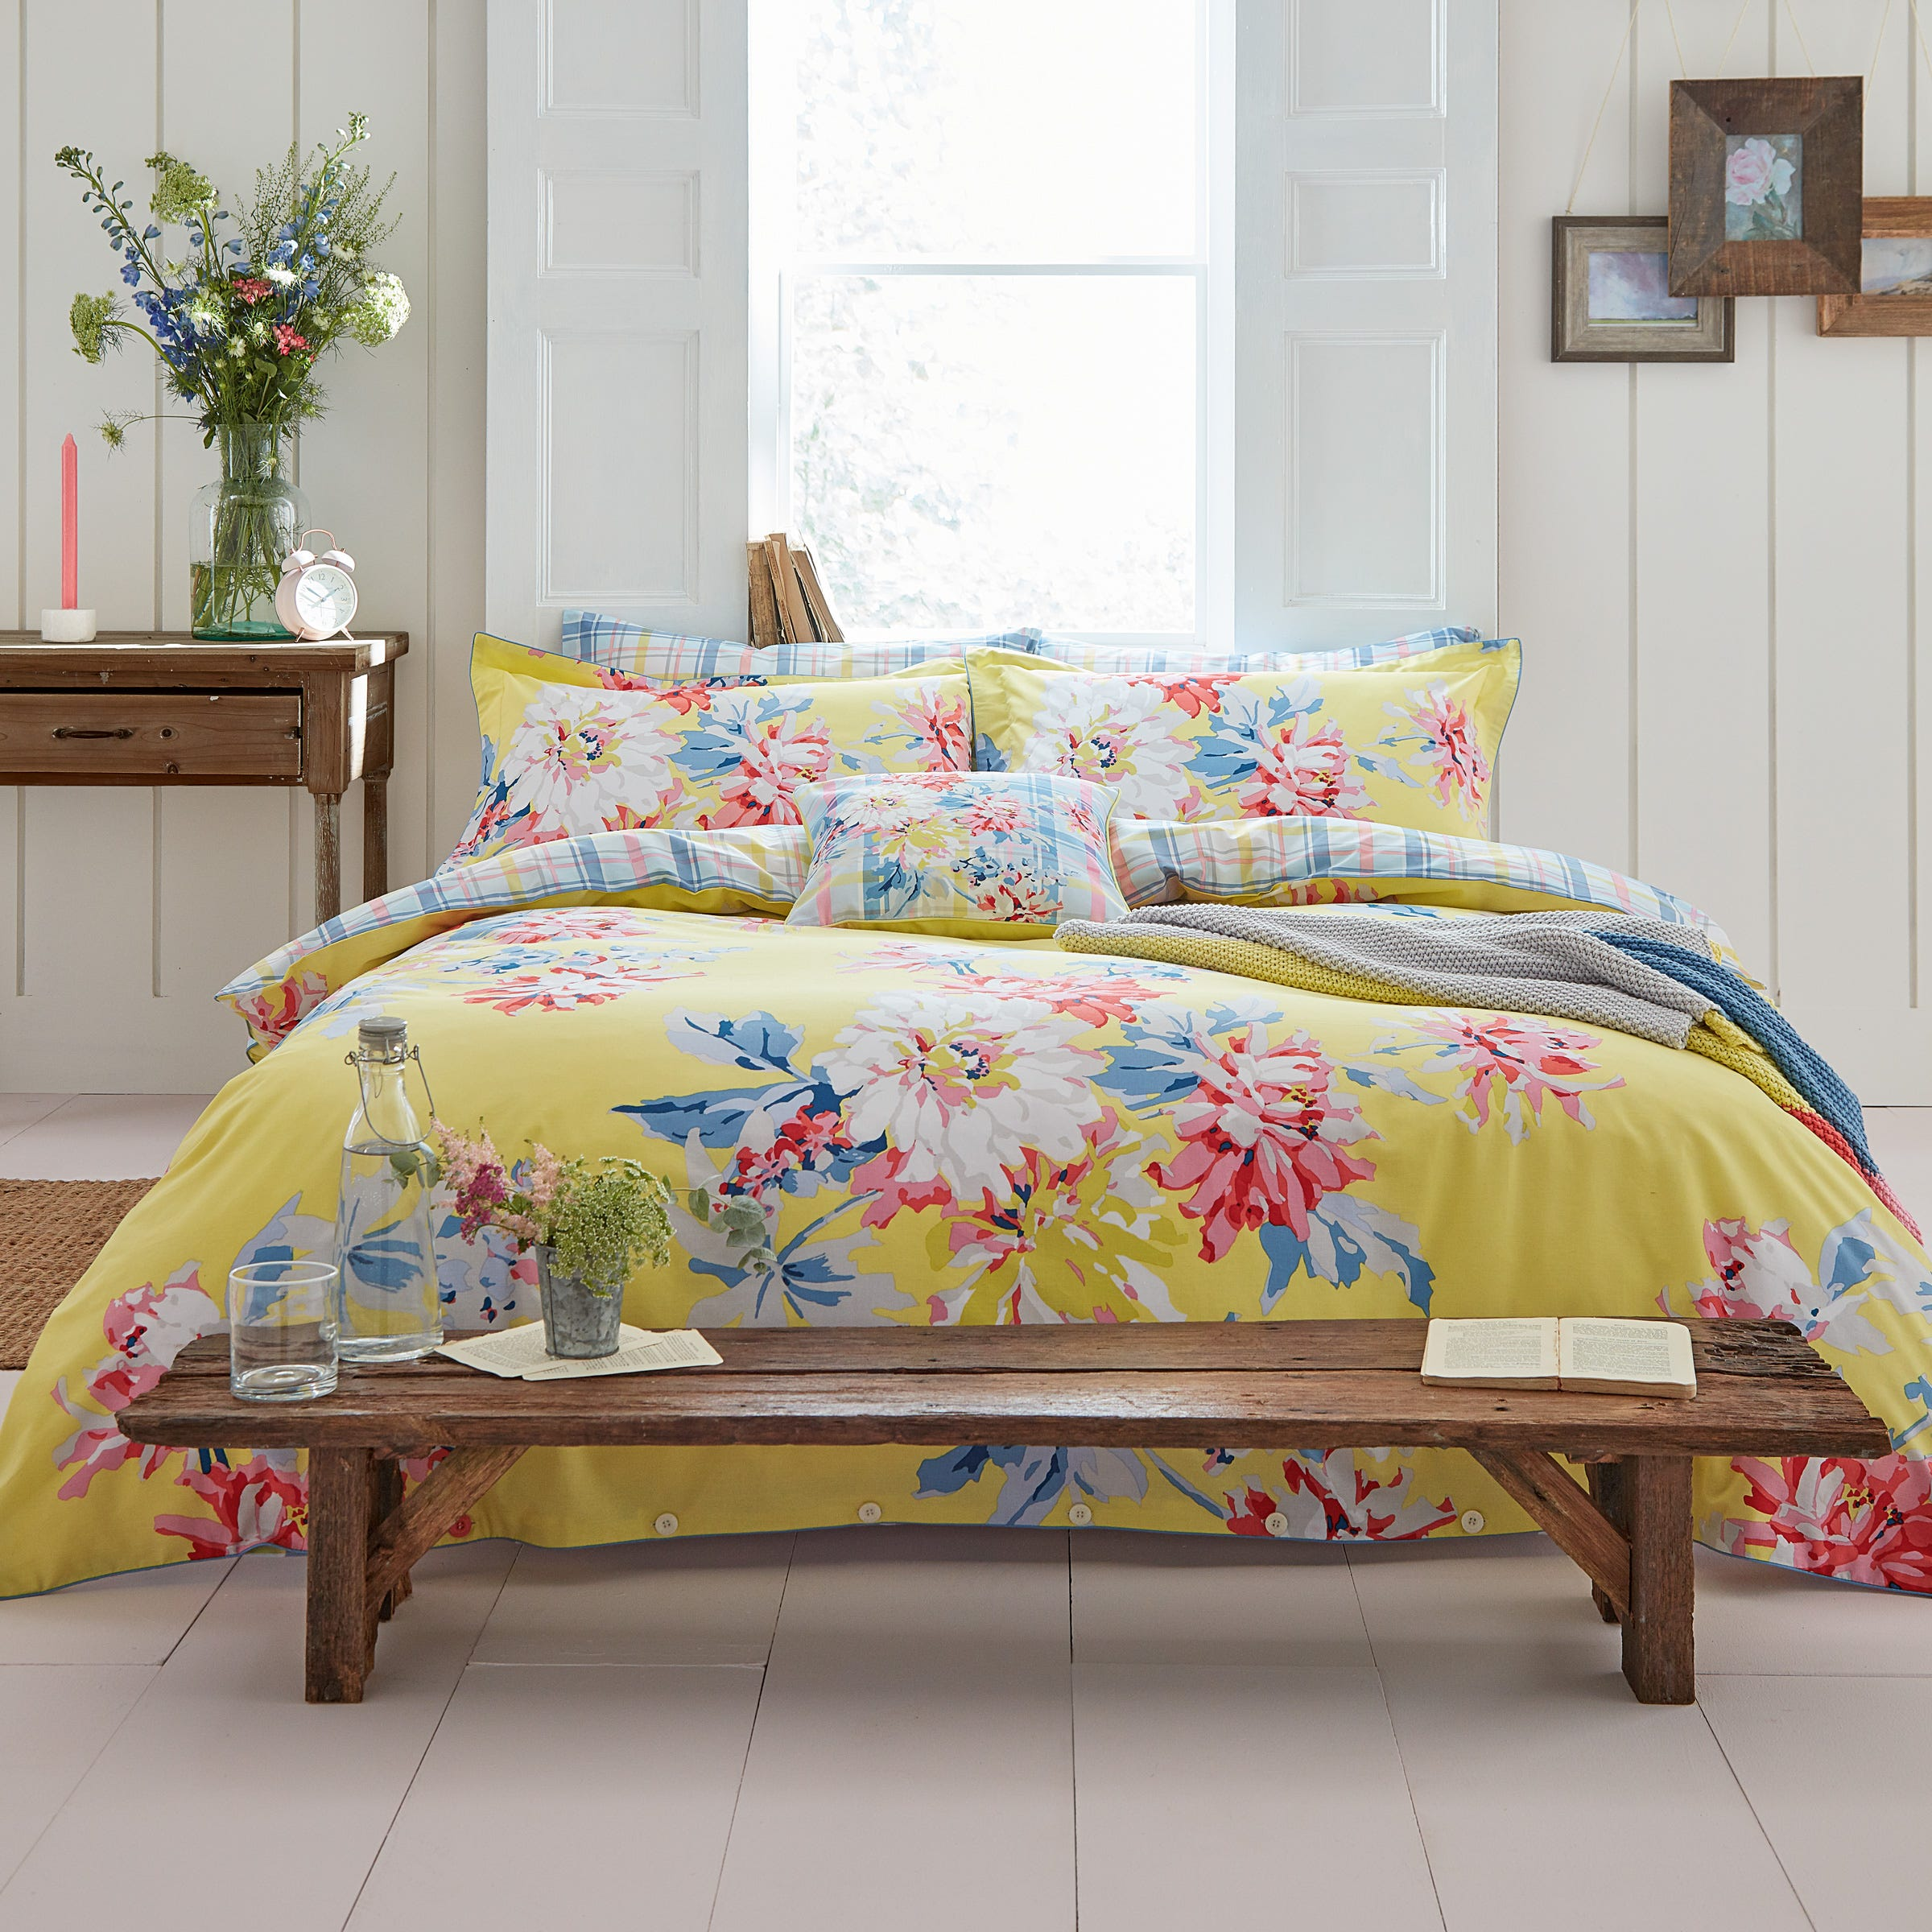 Joules Whitstable Floral Single Duvet Cover, Yellow